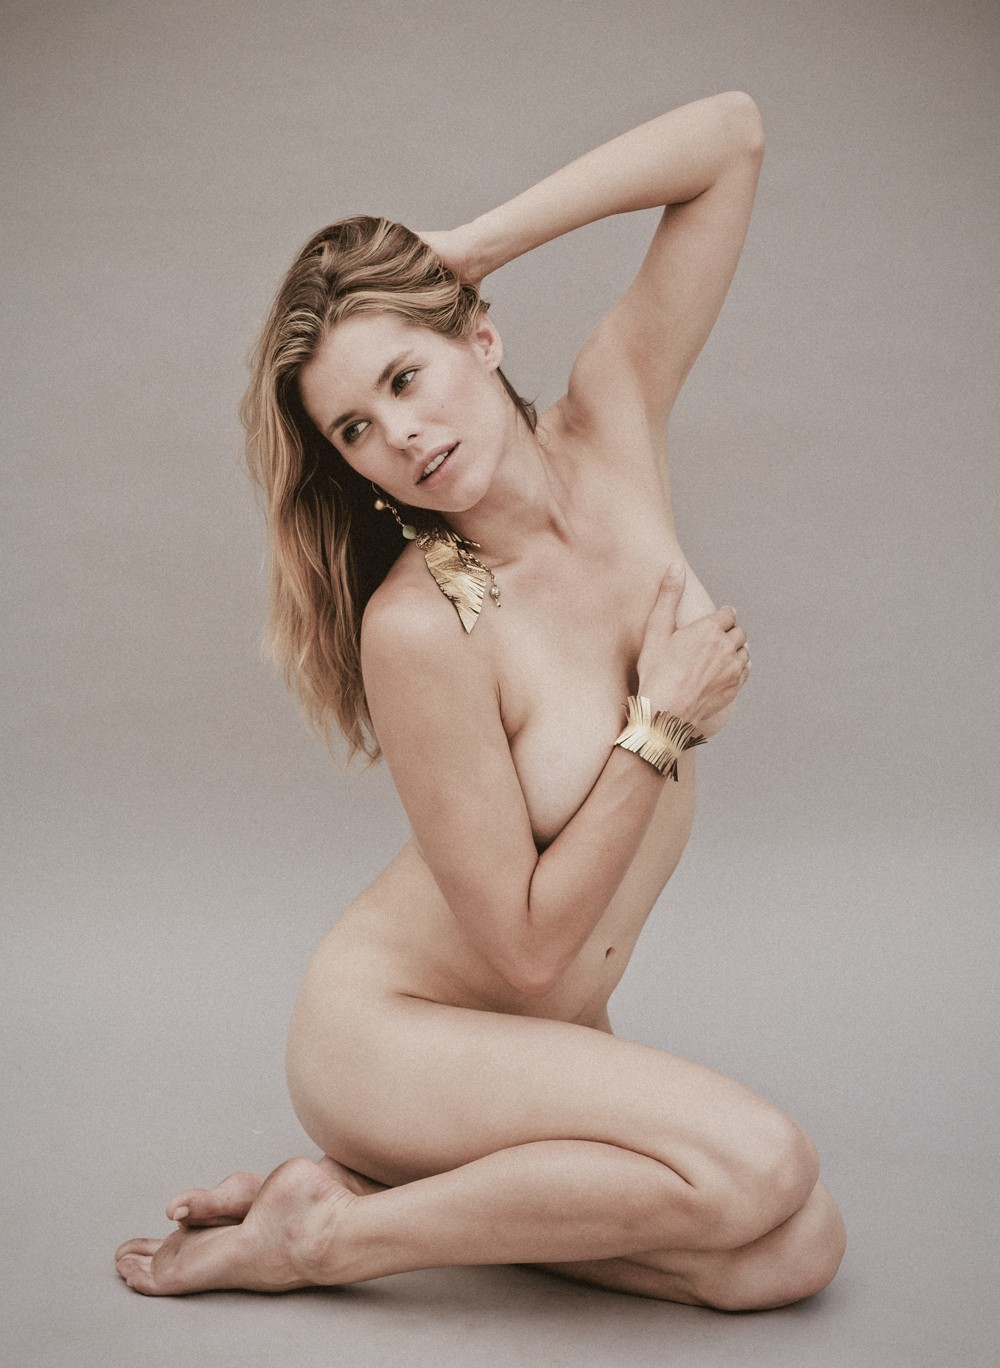 Susie abromeit porn exploited picture